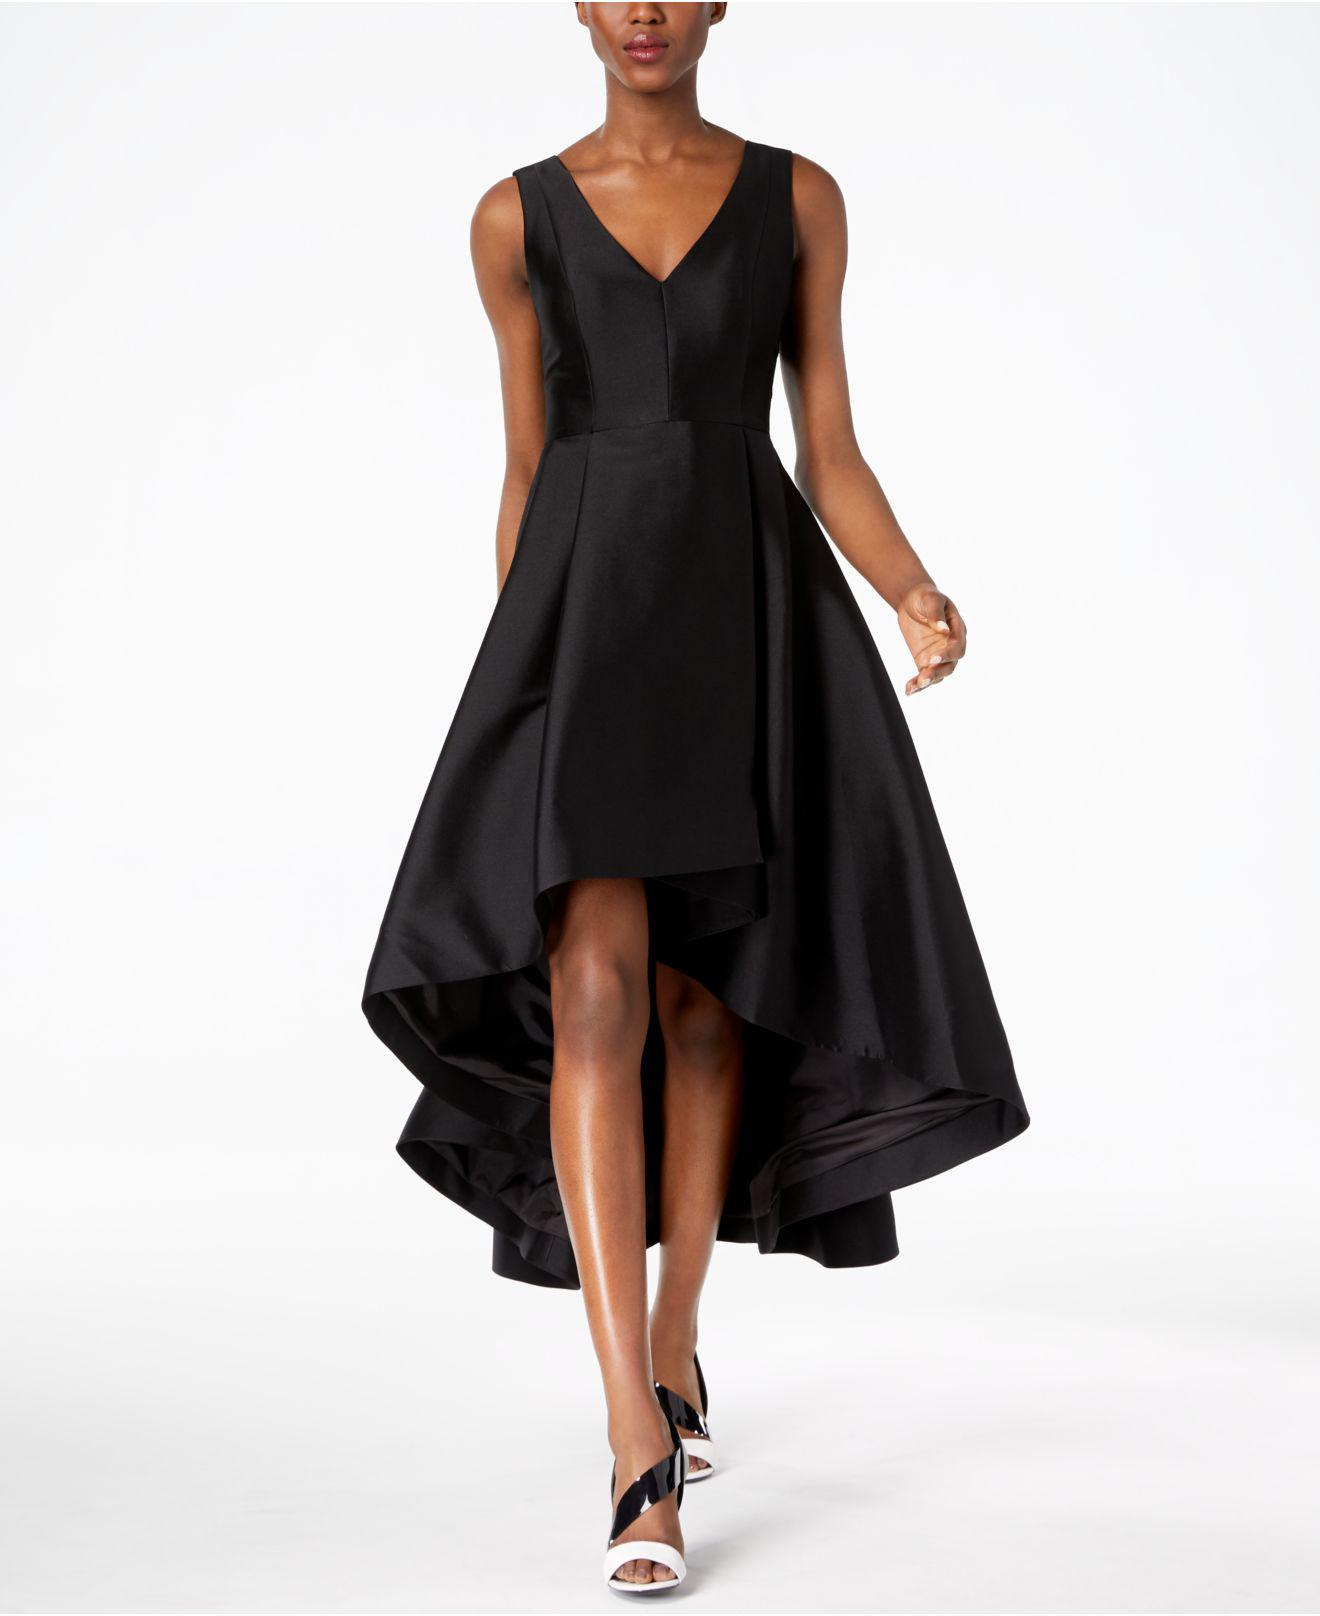 a77c04e0a9 Lyst - Calvin Klein High-low A-line Gown in Black - Save 50%